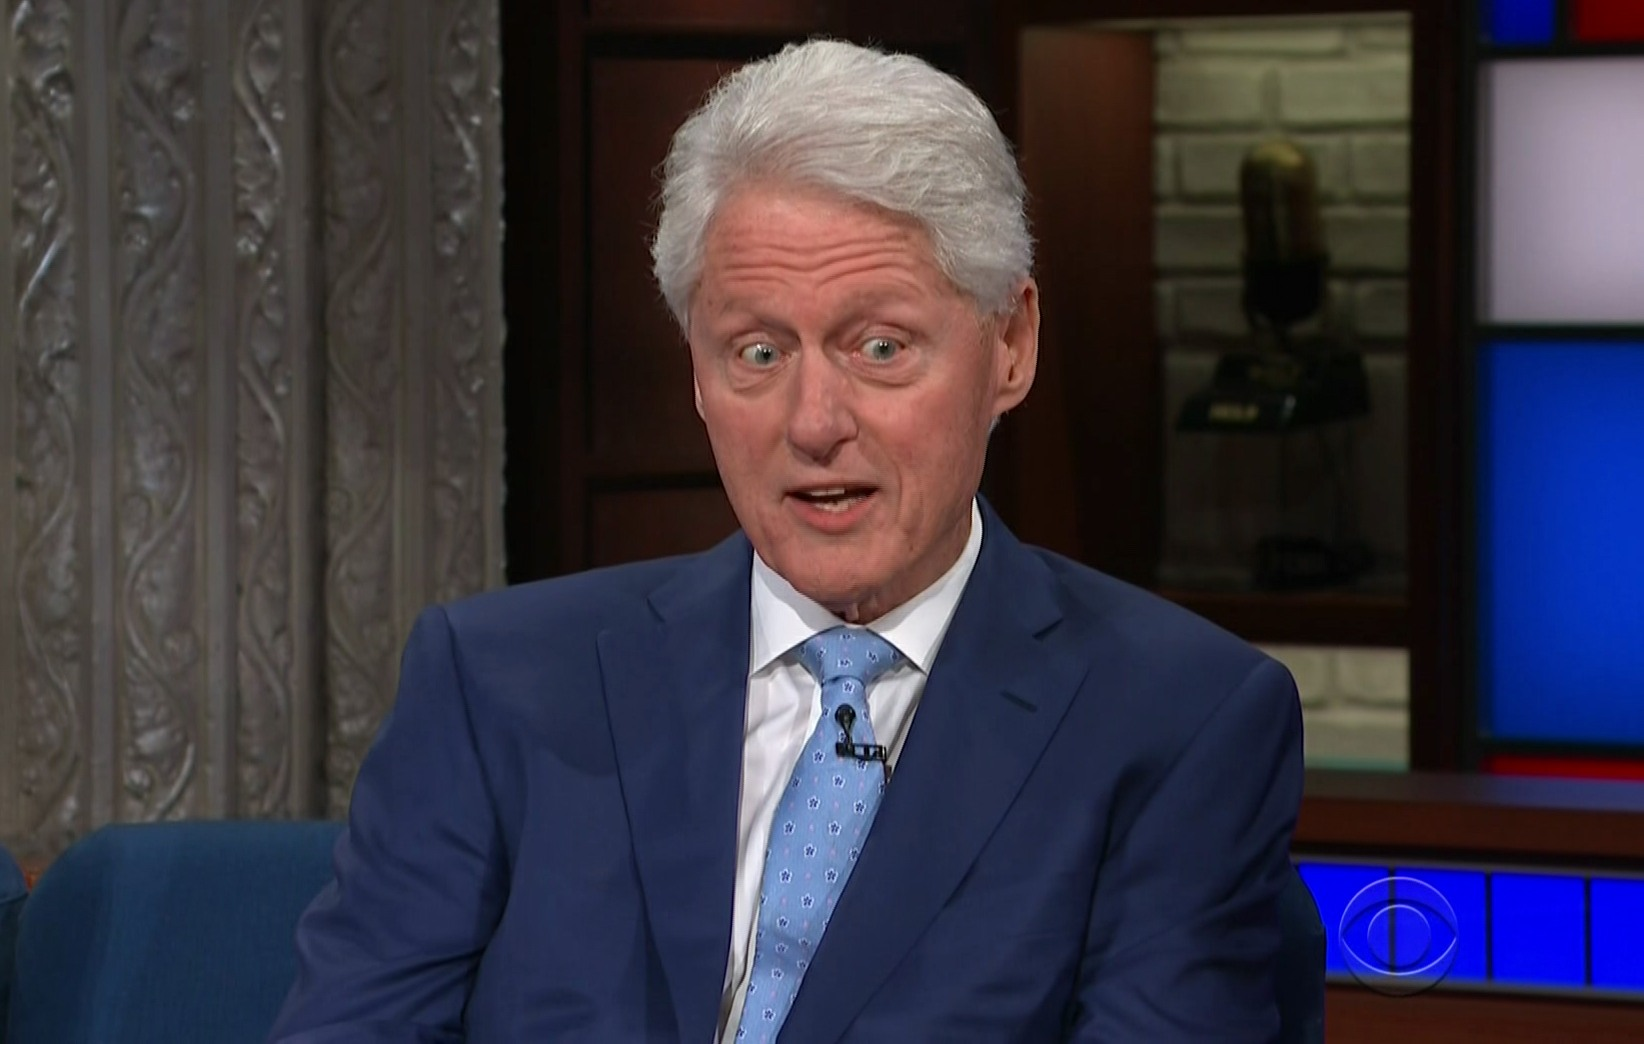 Bill Clinton and James Patterson  during an appearance on CBS' 'The Late Show with Stephen Colbert.'